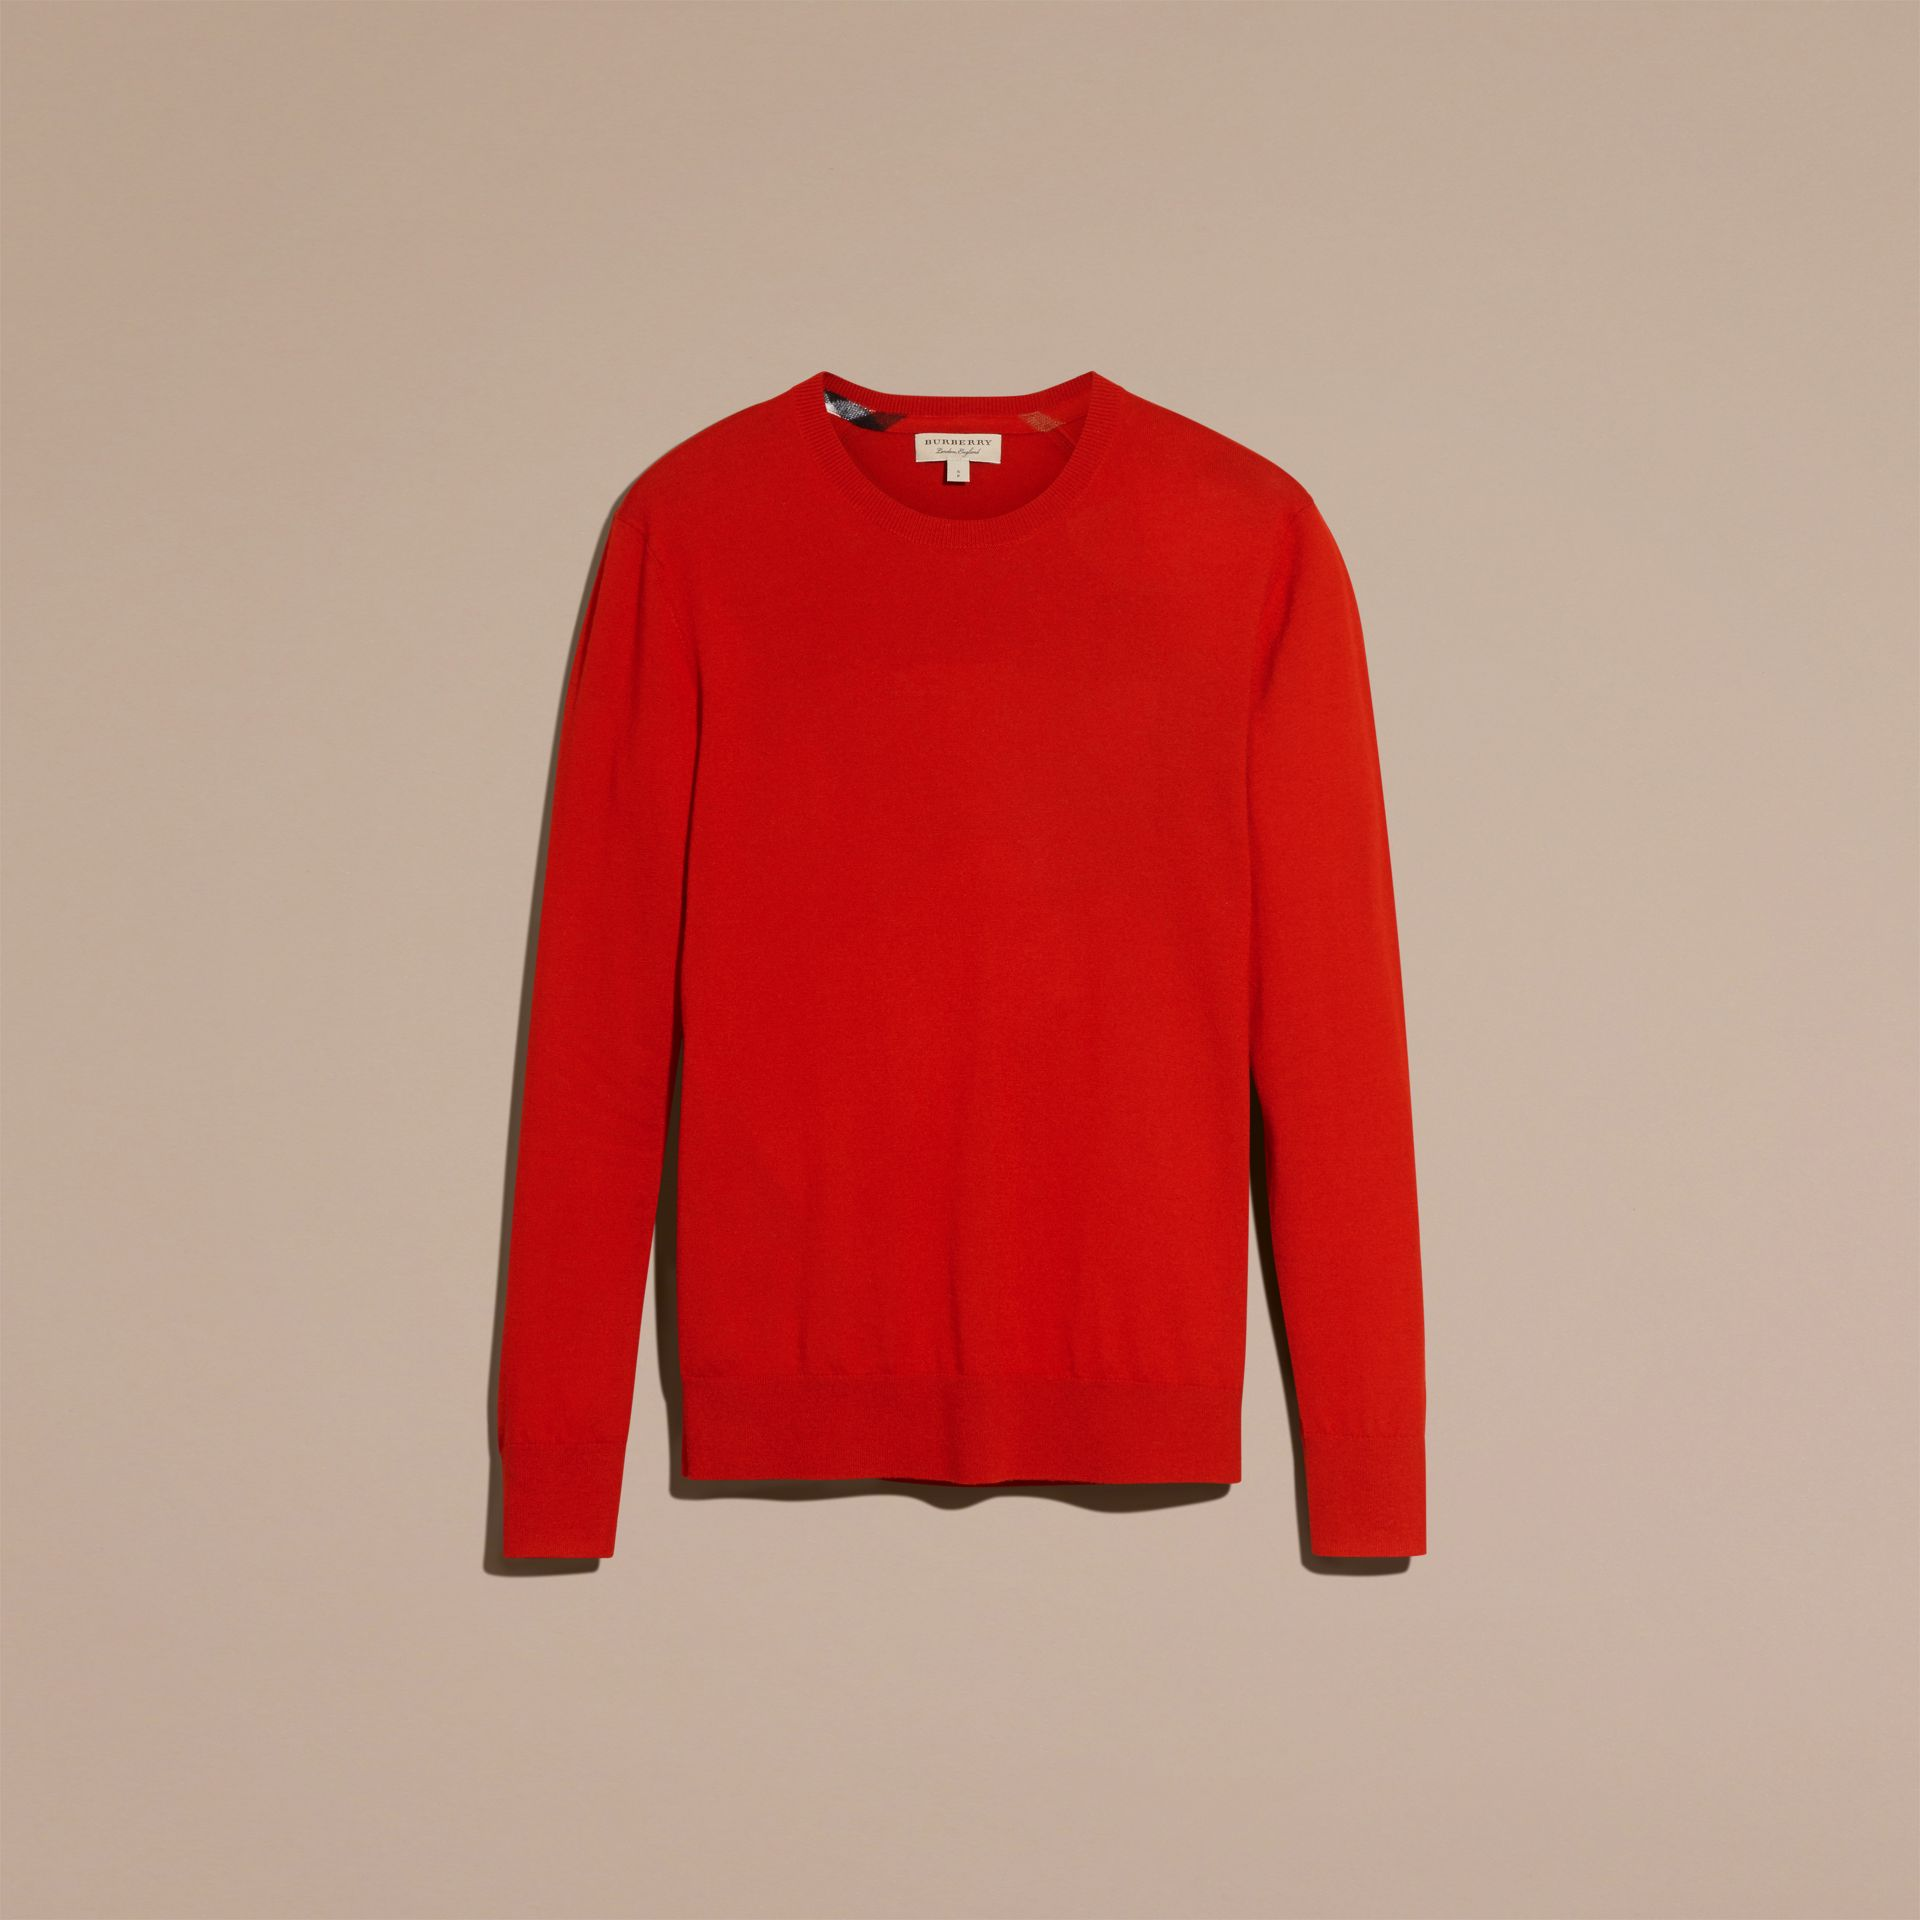 Lightweight Crew Neck Cashmere Sweater with Check Trim in Parade Red - Men | Burberry Australia - gallery image 4